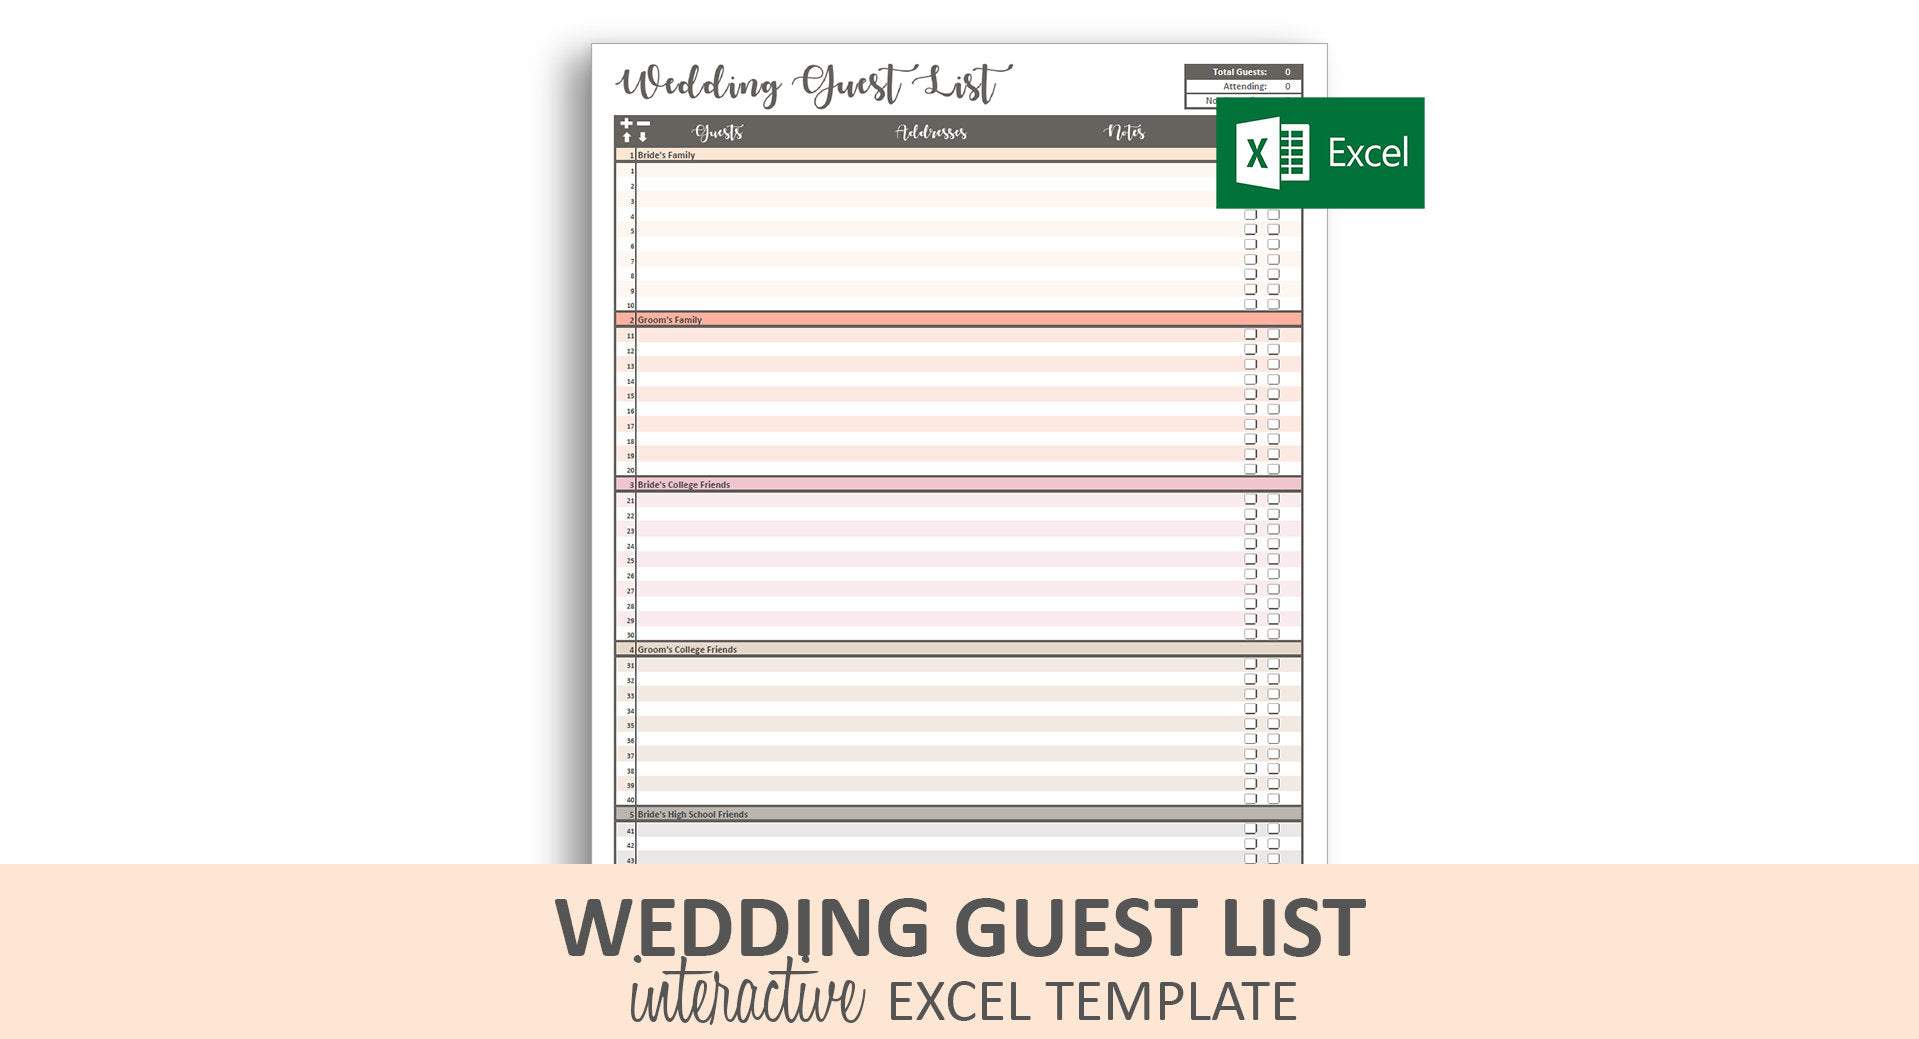 peachy wedding guest list excel template savvy. Black Bedroom Furniture Sets. Home Design Ideas